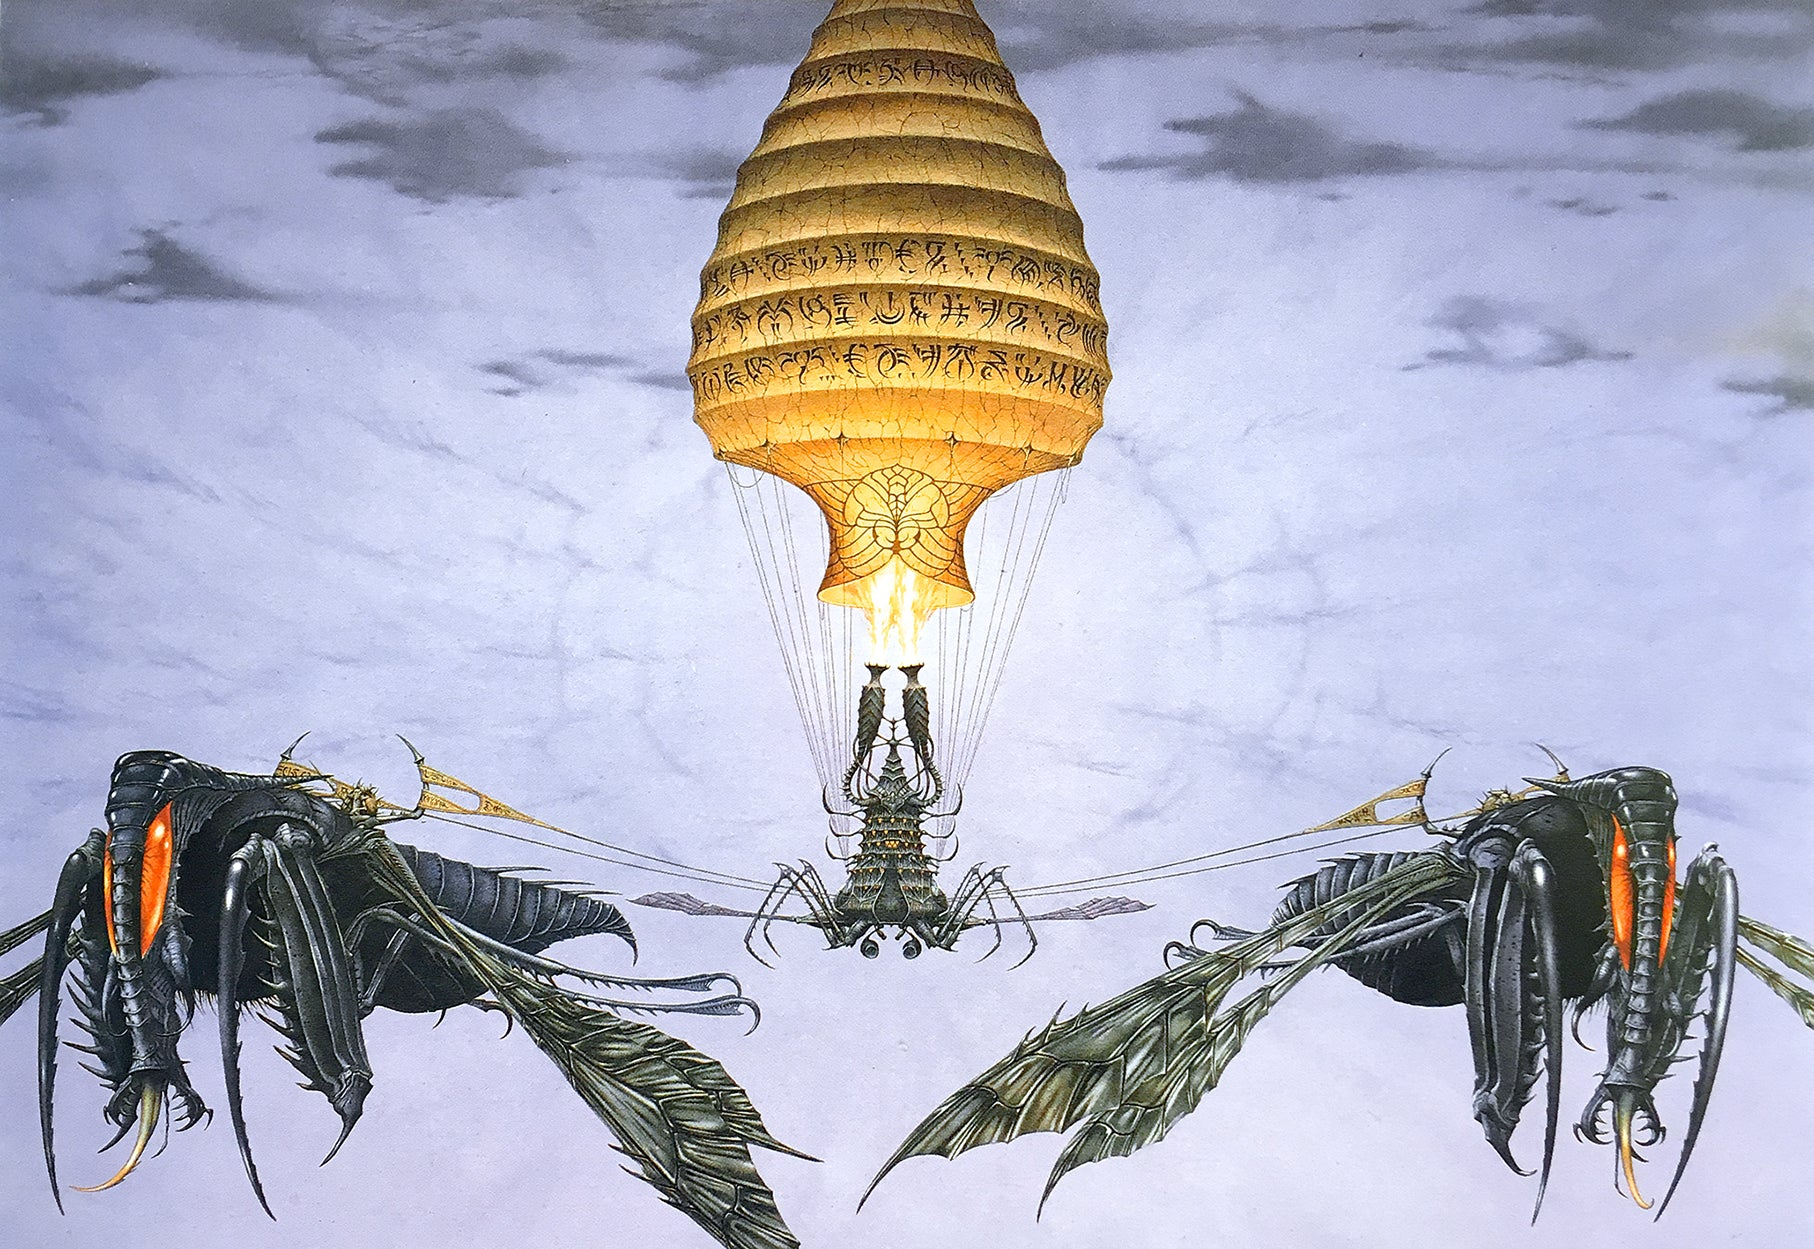 The Firewagon by Rodney Matthews